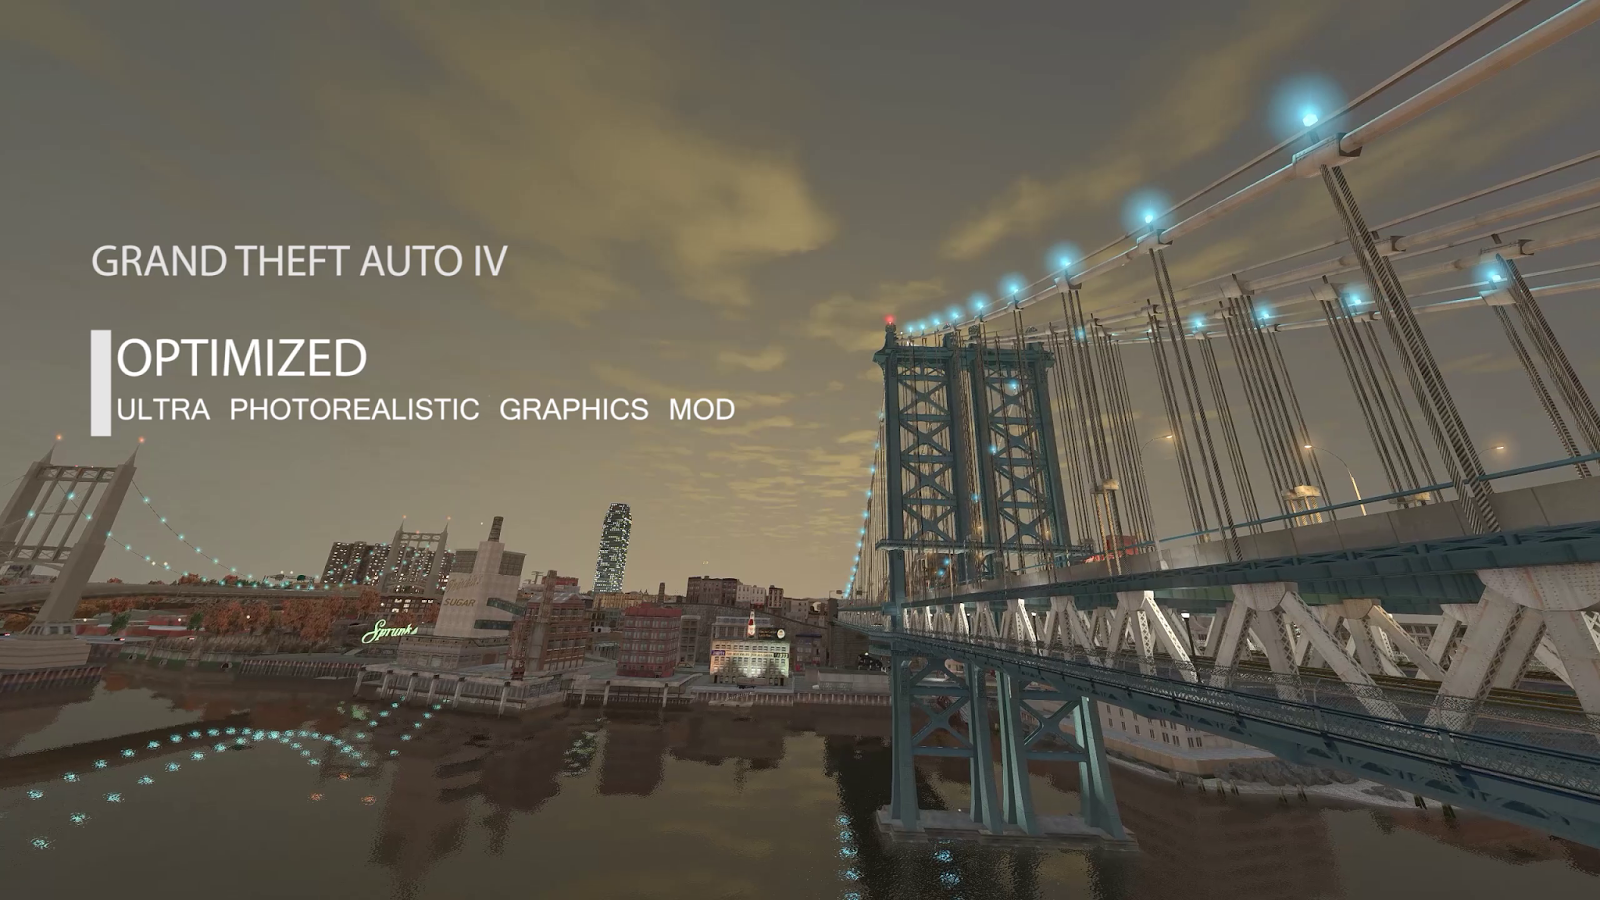 GTA IV Ultra Photorealistic ENB Graphics Mod 2017 -Optimized